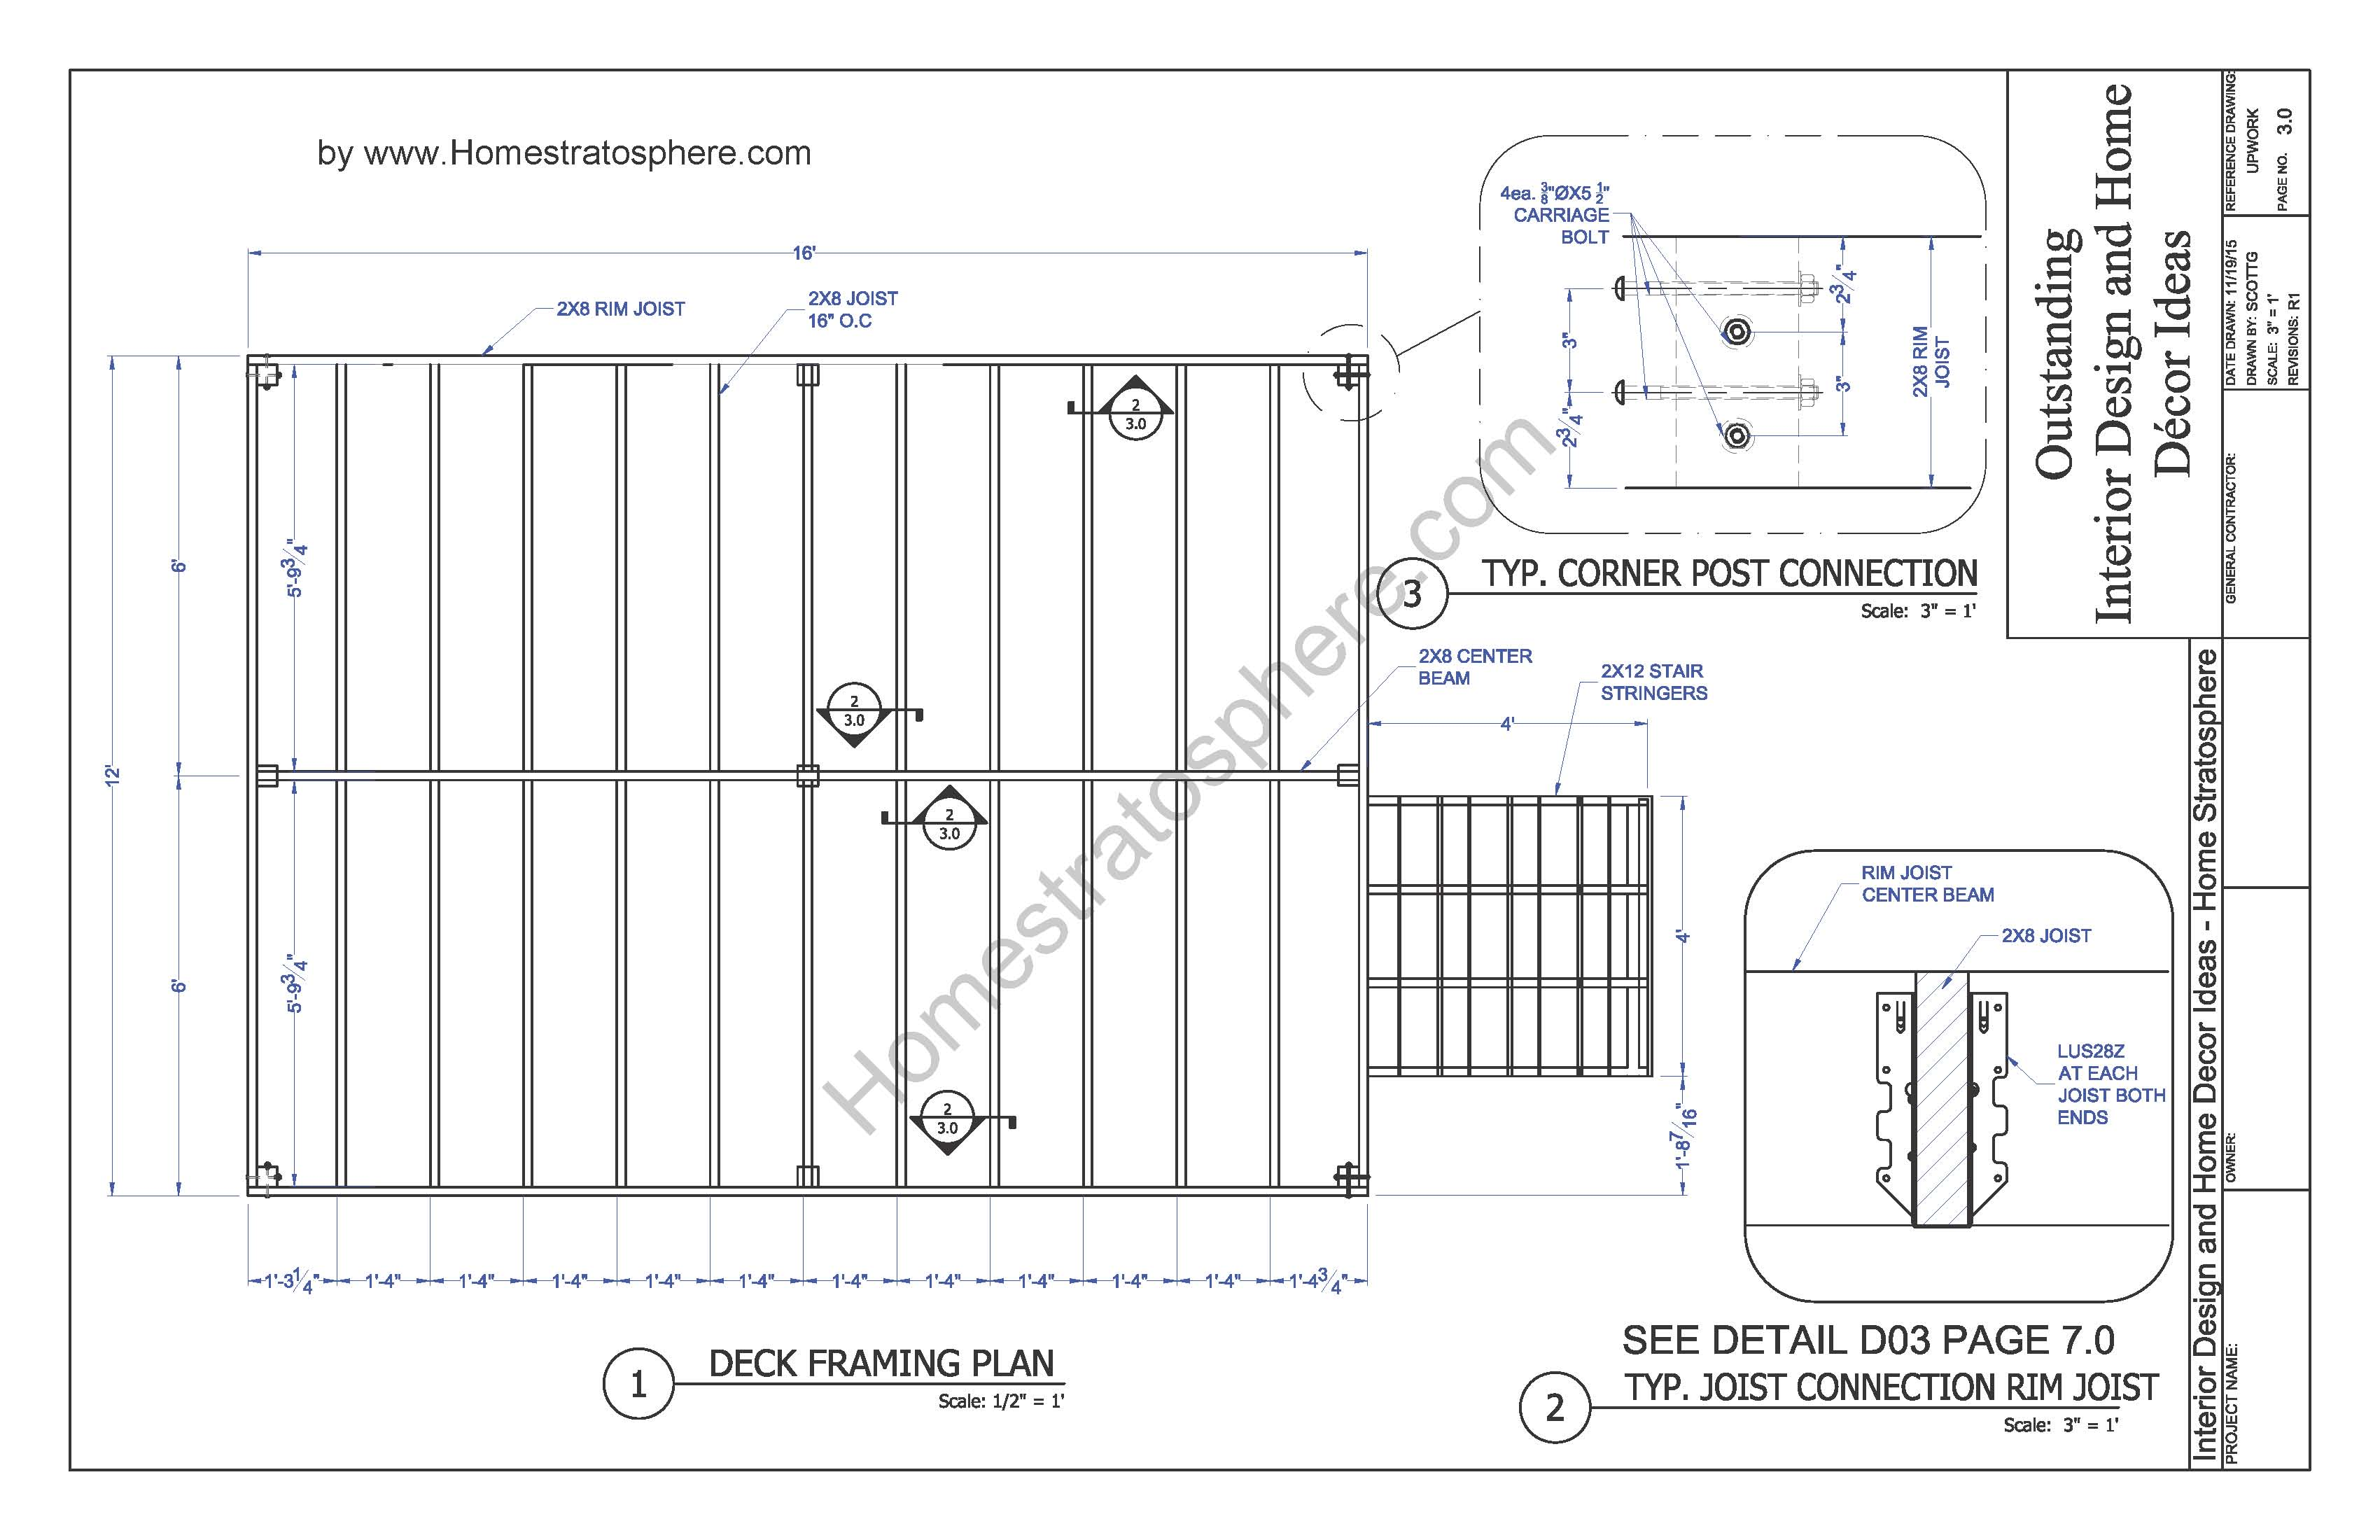 Free 12 x 16 deck plan blueprint with pdf document download malvernweather Image collections